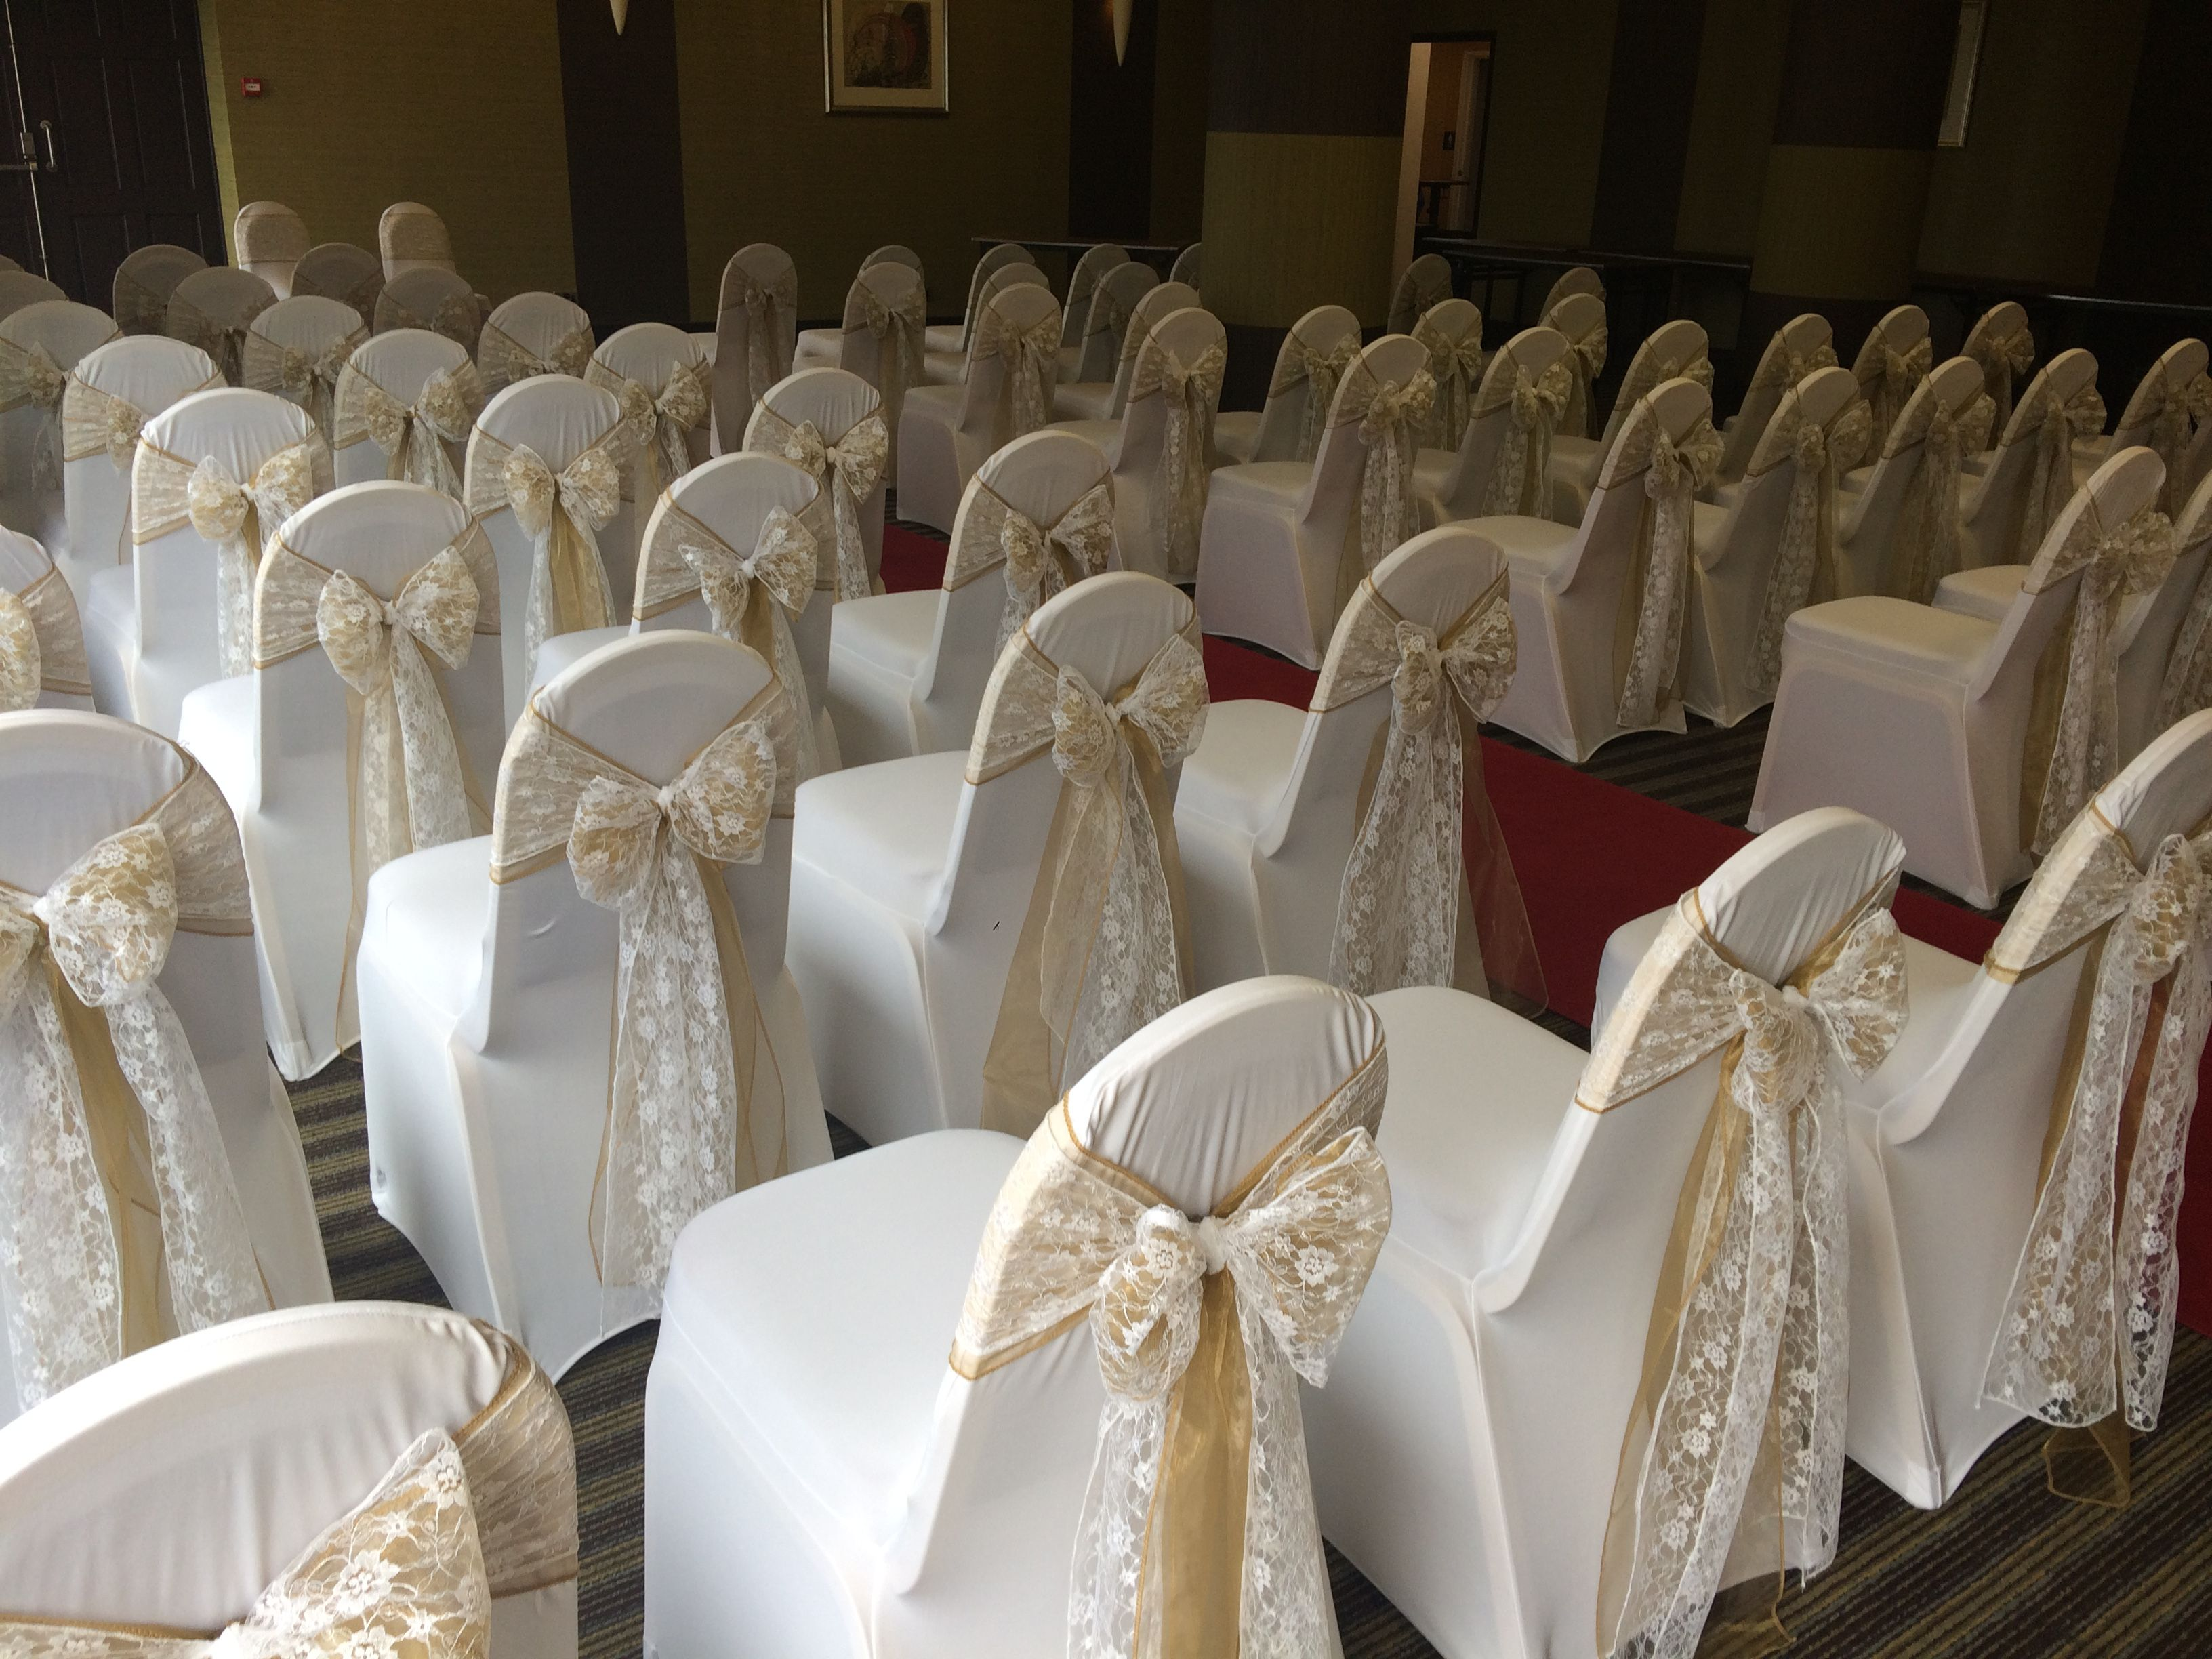 Wedding post box decorations  Chair covers with pale mocha organza and lace overlay at a Welsh